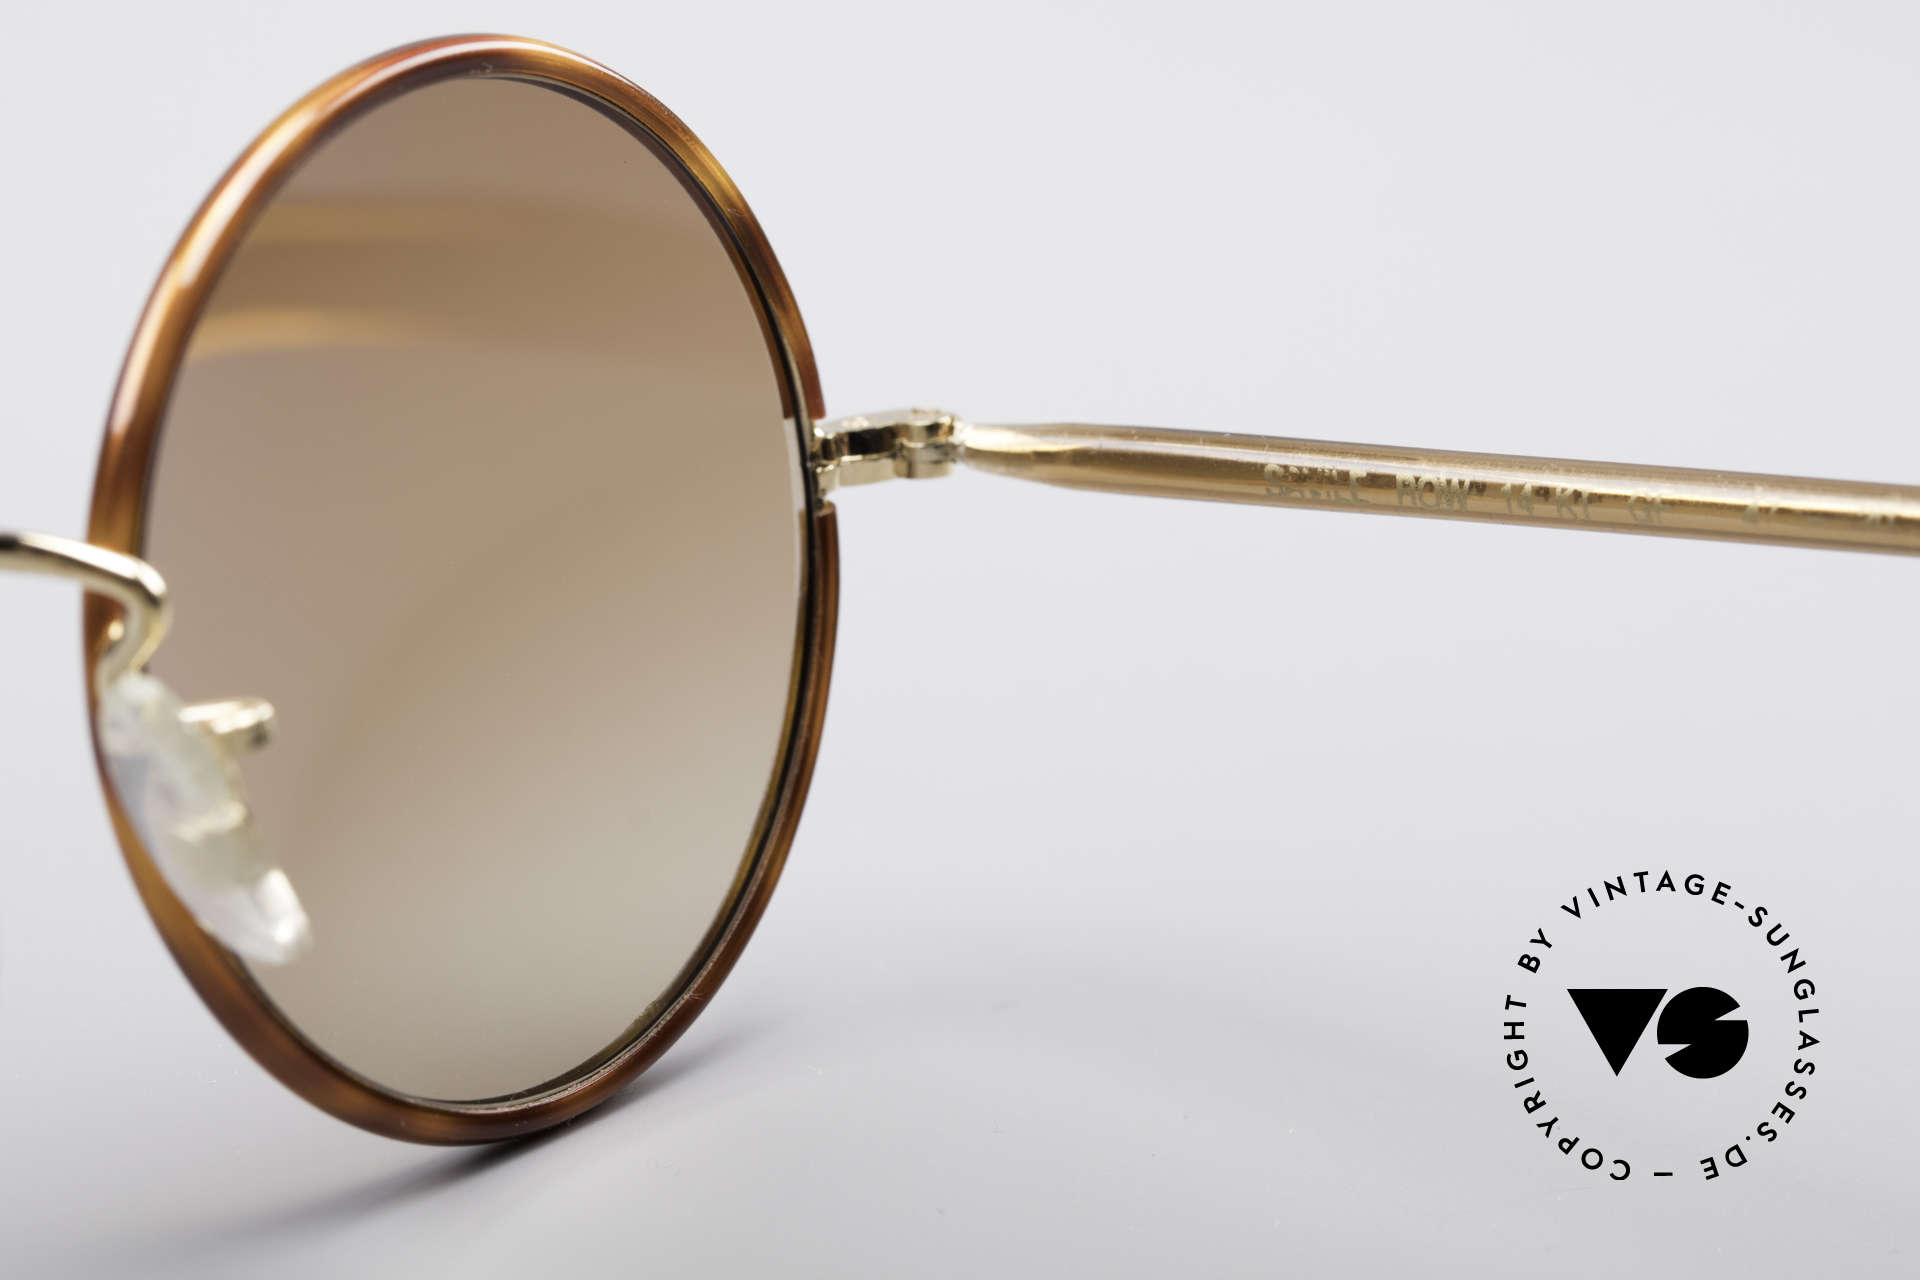 Savile Row Round 47/20 Harry Potter Glasses, worn by famous Harry Potter (true collector's item), Made for Men